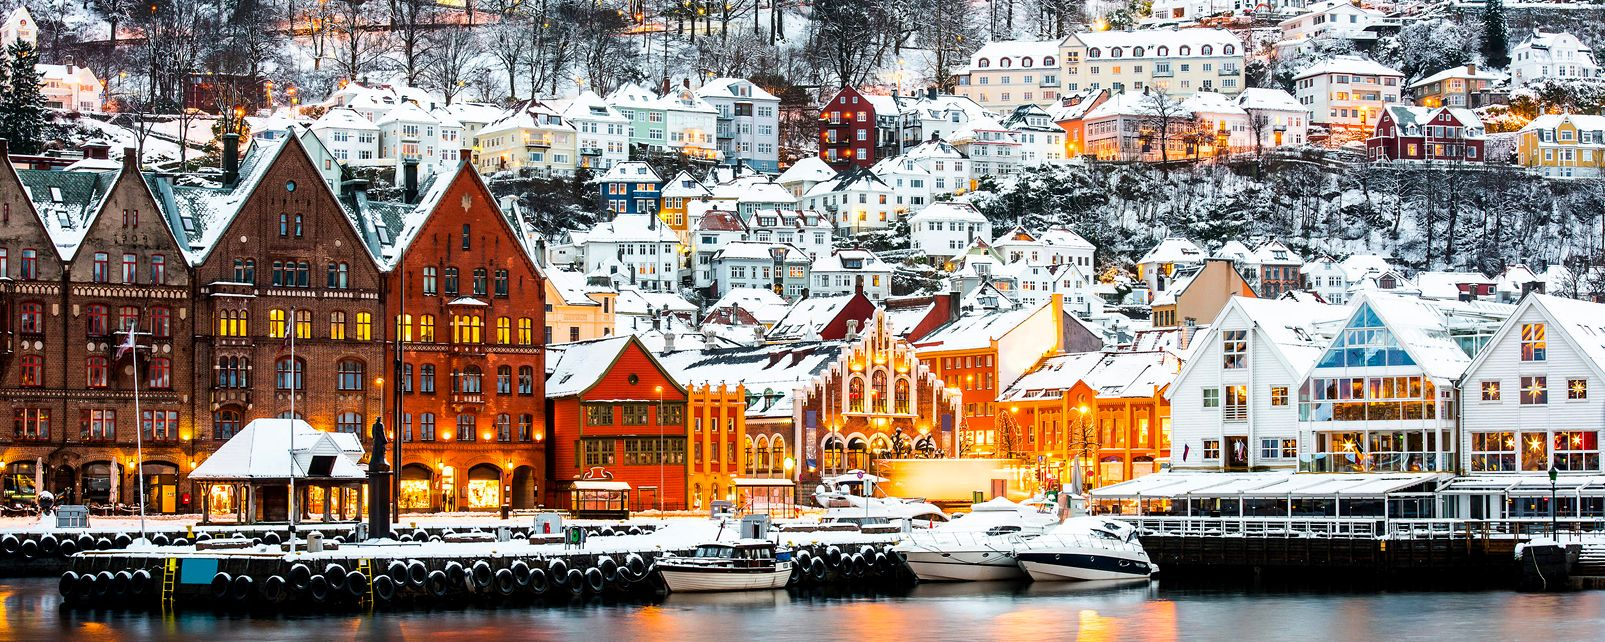 le quartier de bryggen bergen norv ge. Black Bedroom Furniture Sets. Home Design Ideas